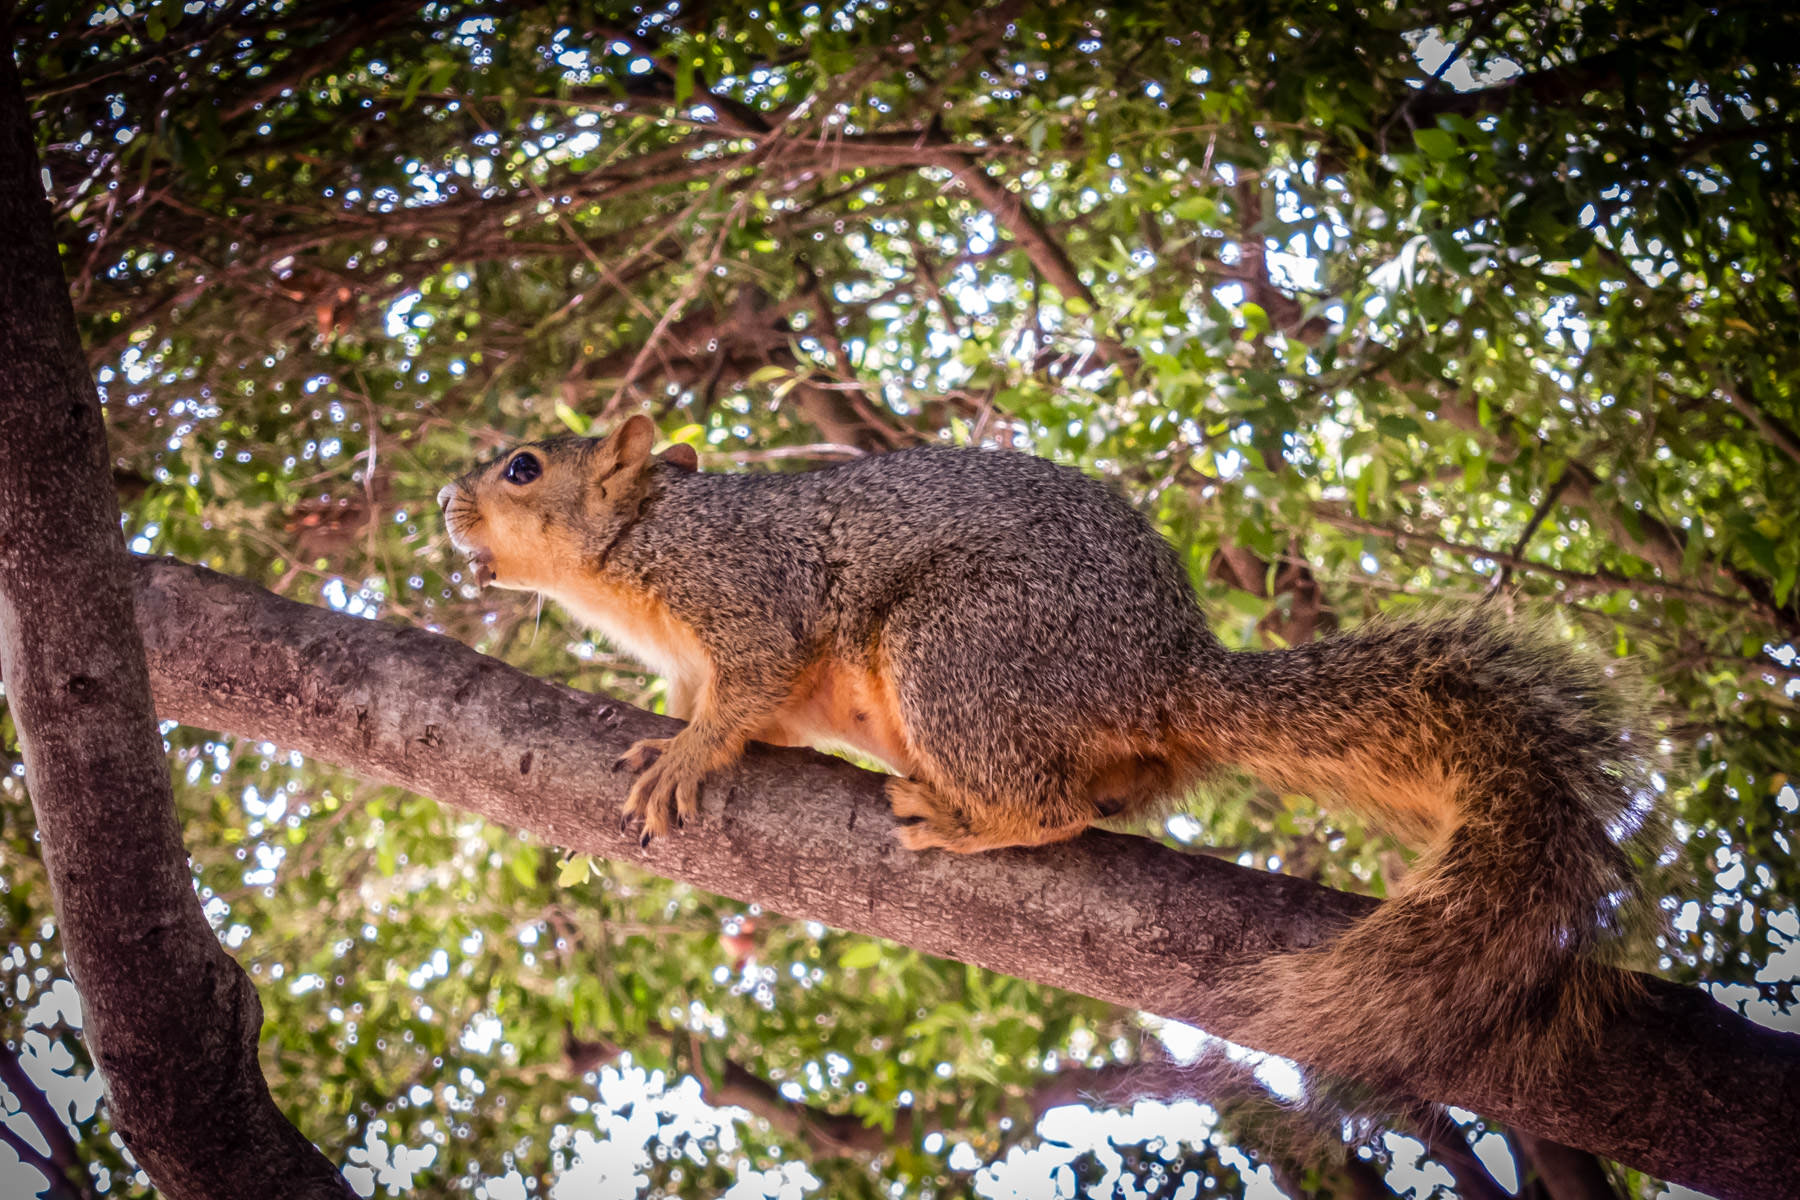 A squirrel at Celestial Park in Addison, Texas.